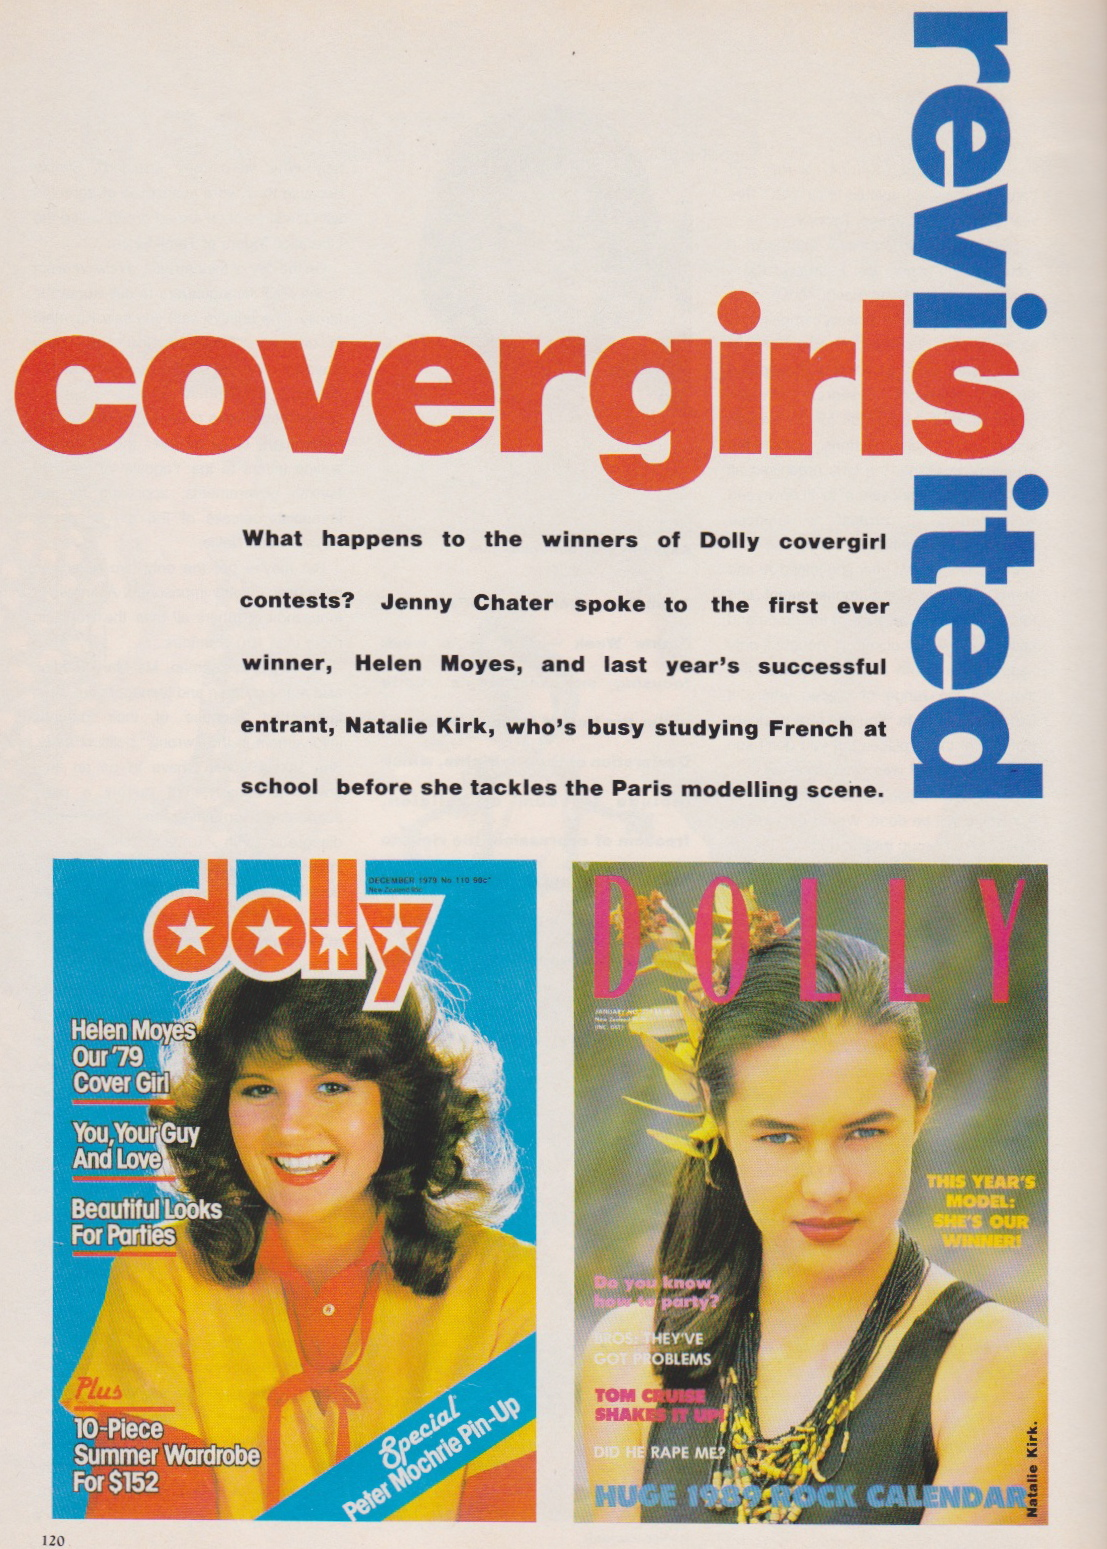 Dolly Covergirl Competition | 1989 Article 01.jpeg